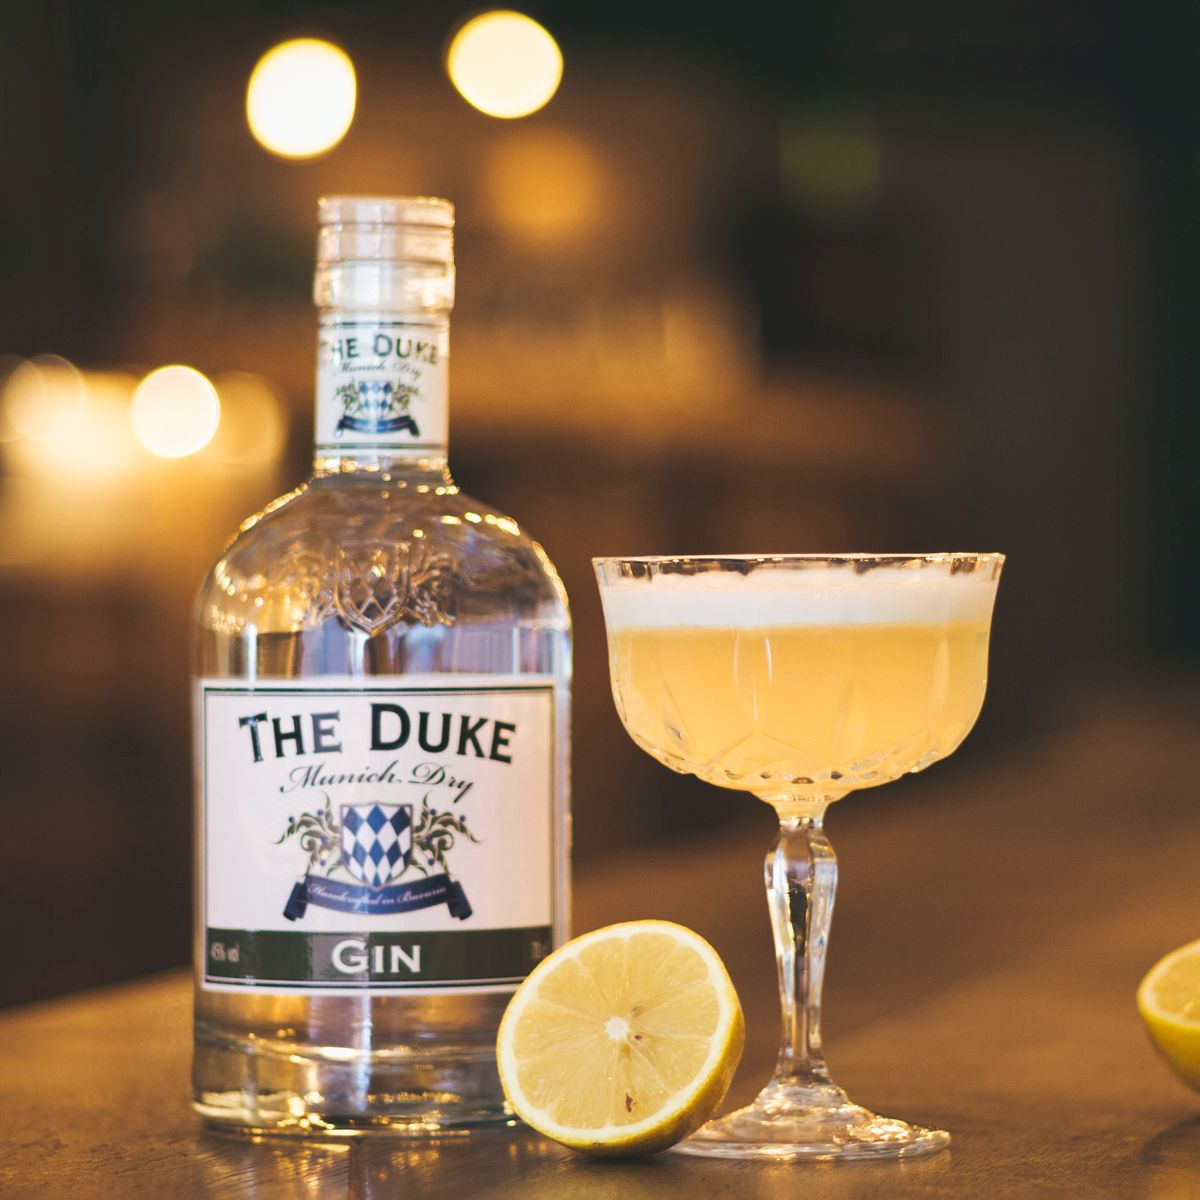 """Beloved Duchess"" - Platz 4 der THE DUKE Cocktail Competition"